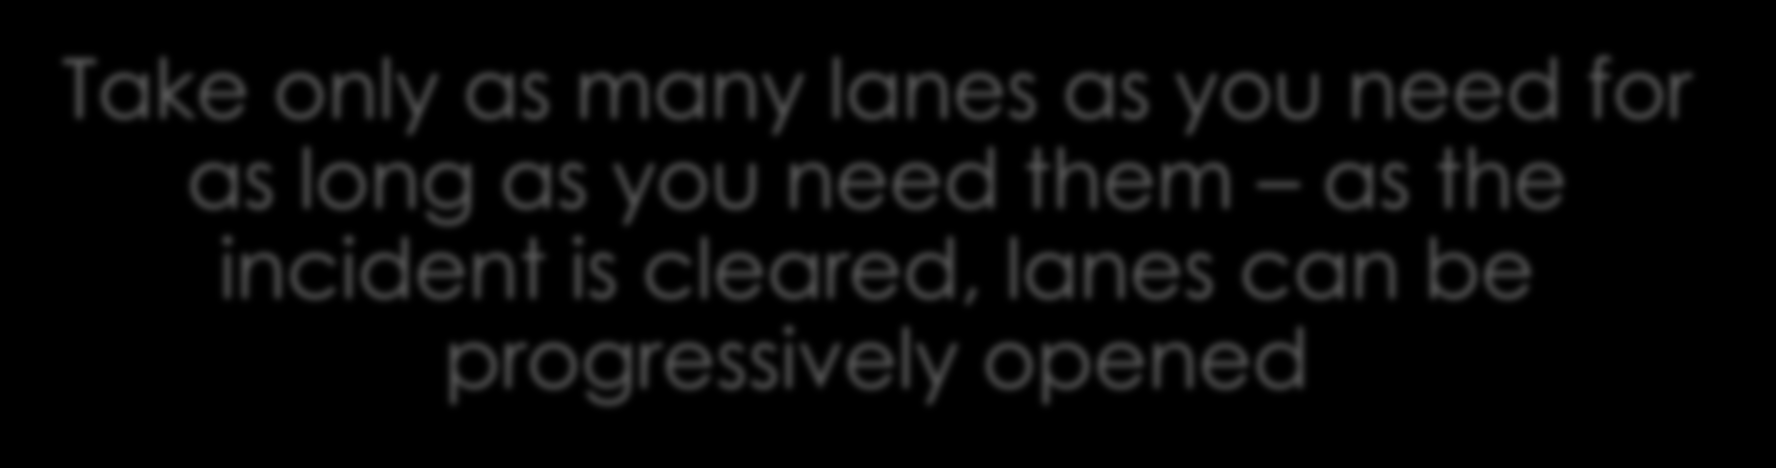 Progressively Open Lanes Take only as many lanes as you need for as long as